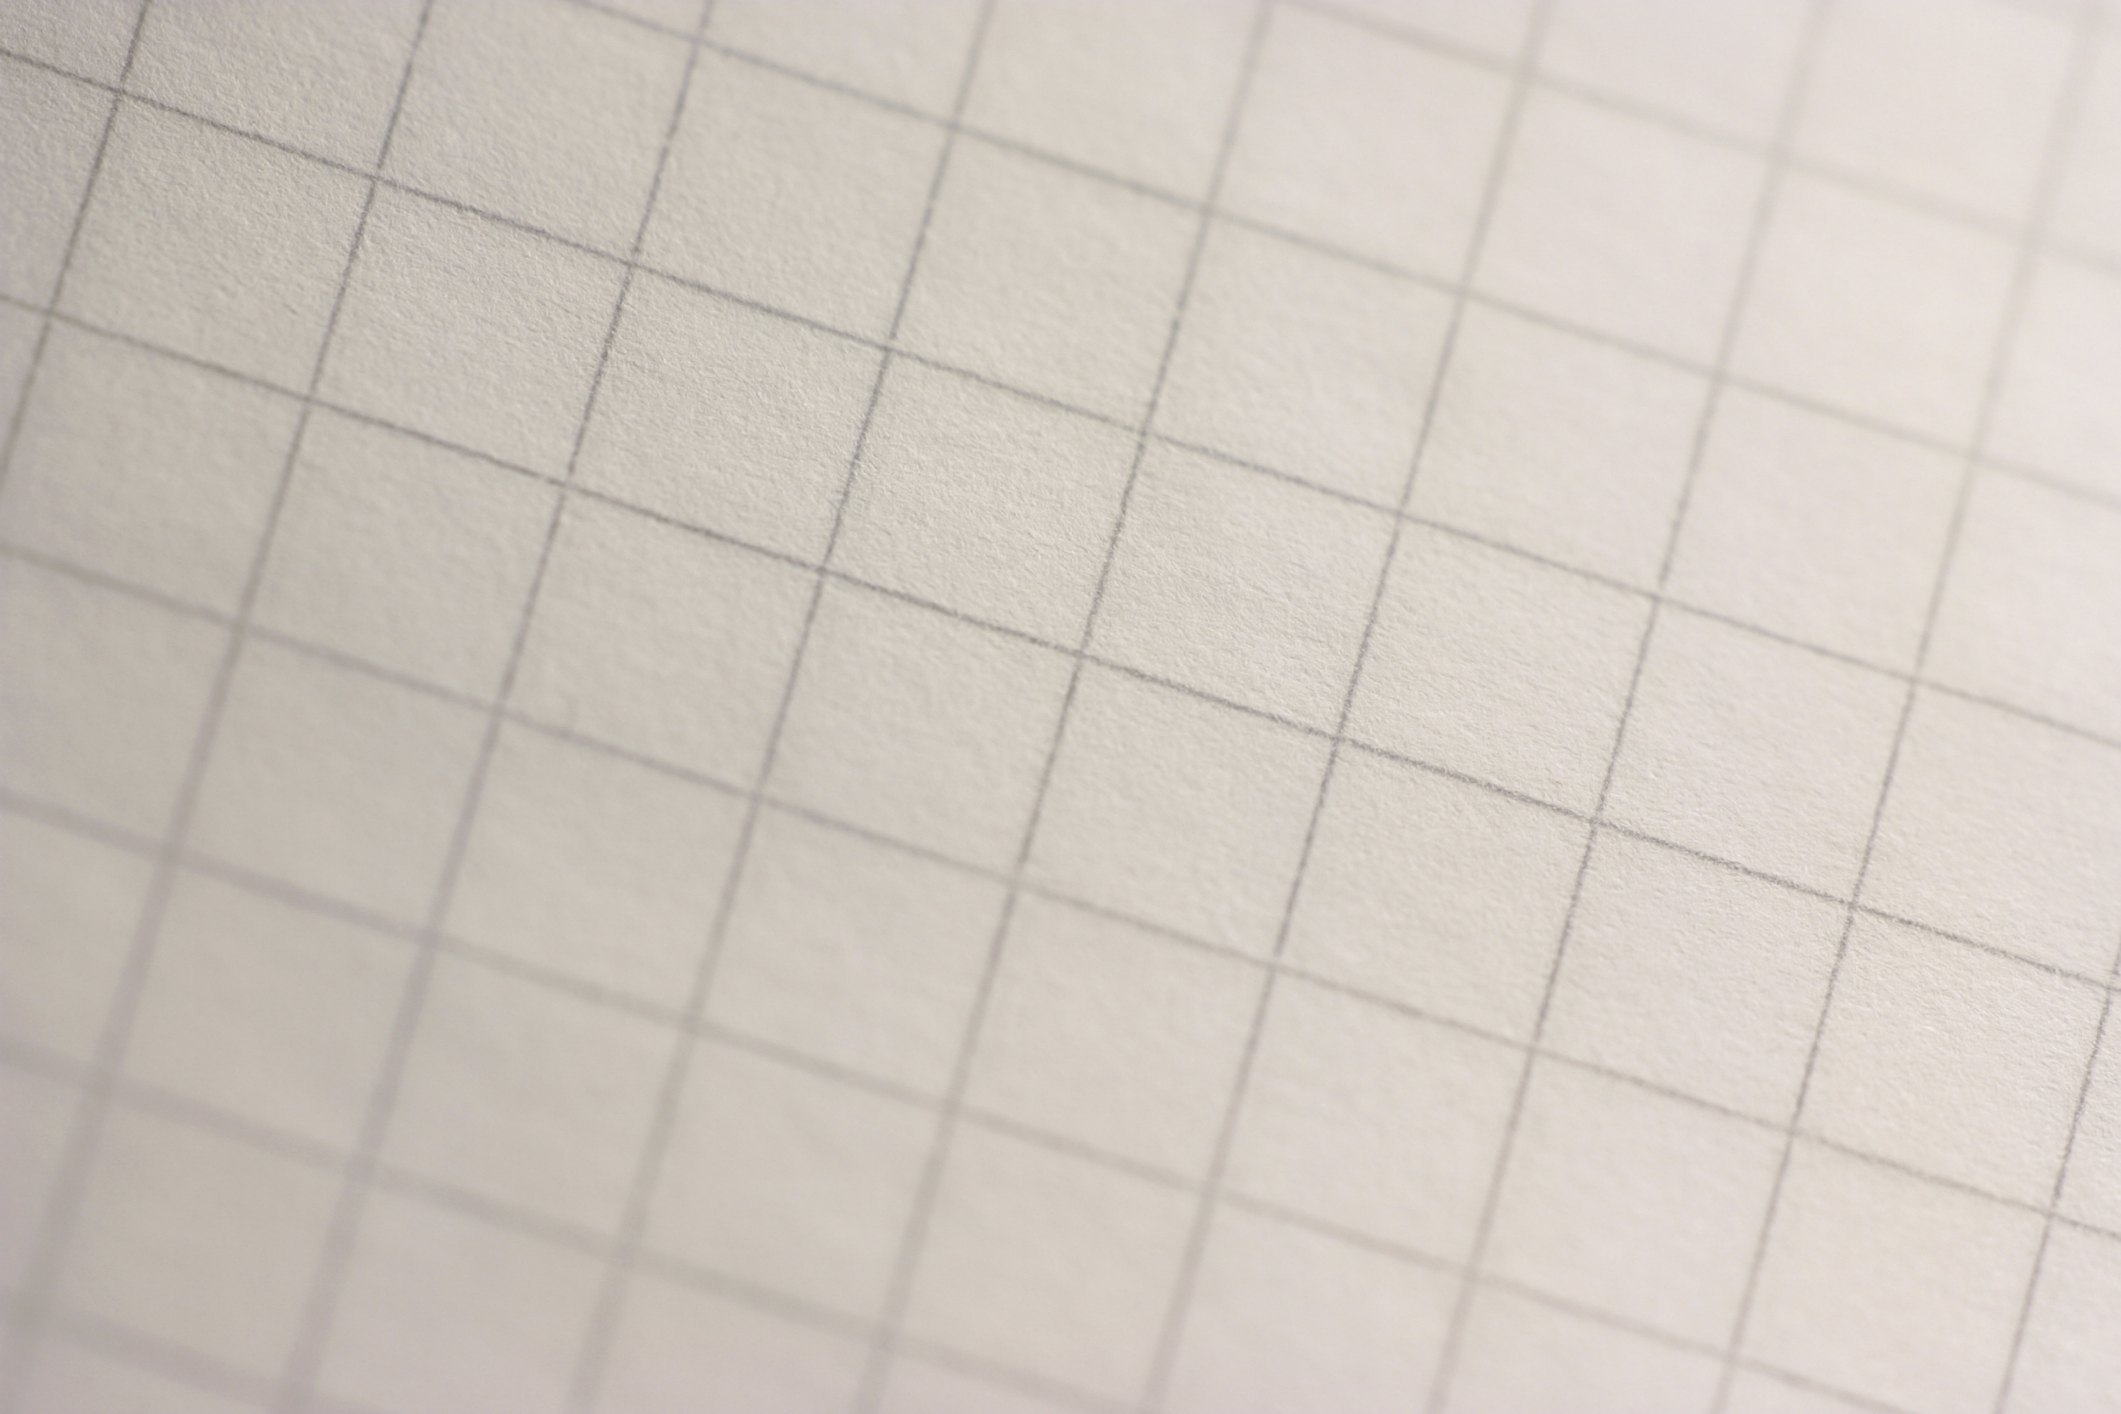 how to make your own graph paper